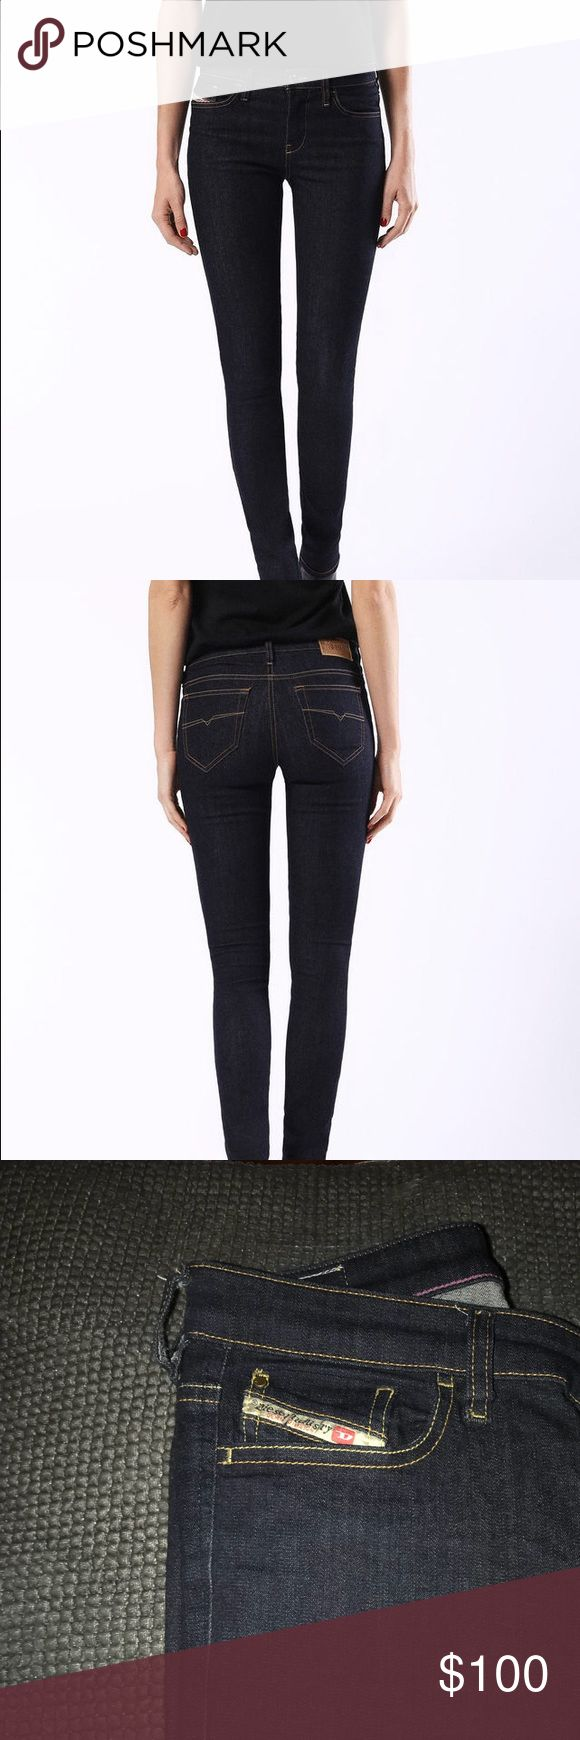 Diesel ski see super skinny jeans Skinzee super skinny by diesel style 0813C. Retails for $178. Worn twice, perfect condition. It's a size 28 but Diesel runs kind of small so fits the average size 27. Lotssss of stretch so if you're a 28 it will still fit. So stretchy it's almost a legging jean. Diesel Jeans Skinny